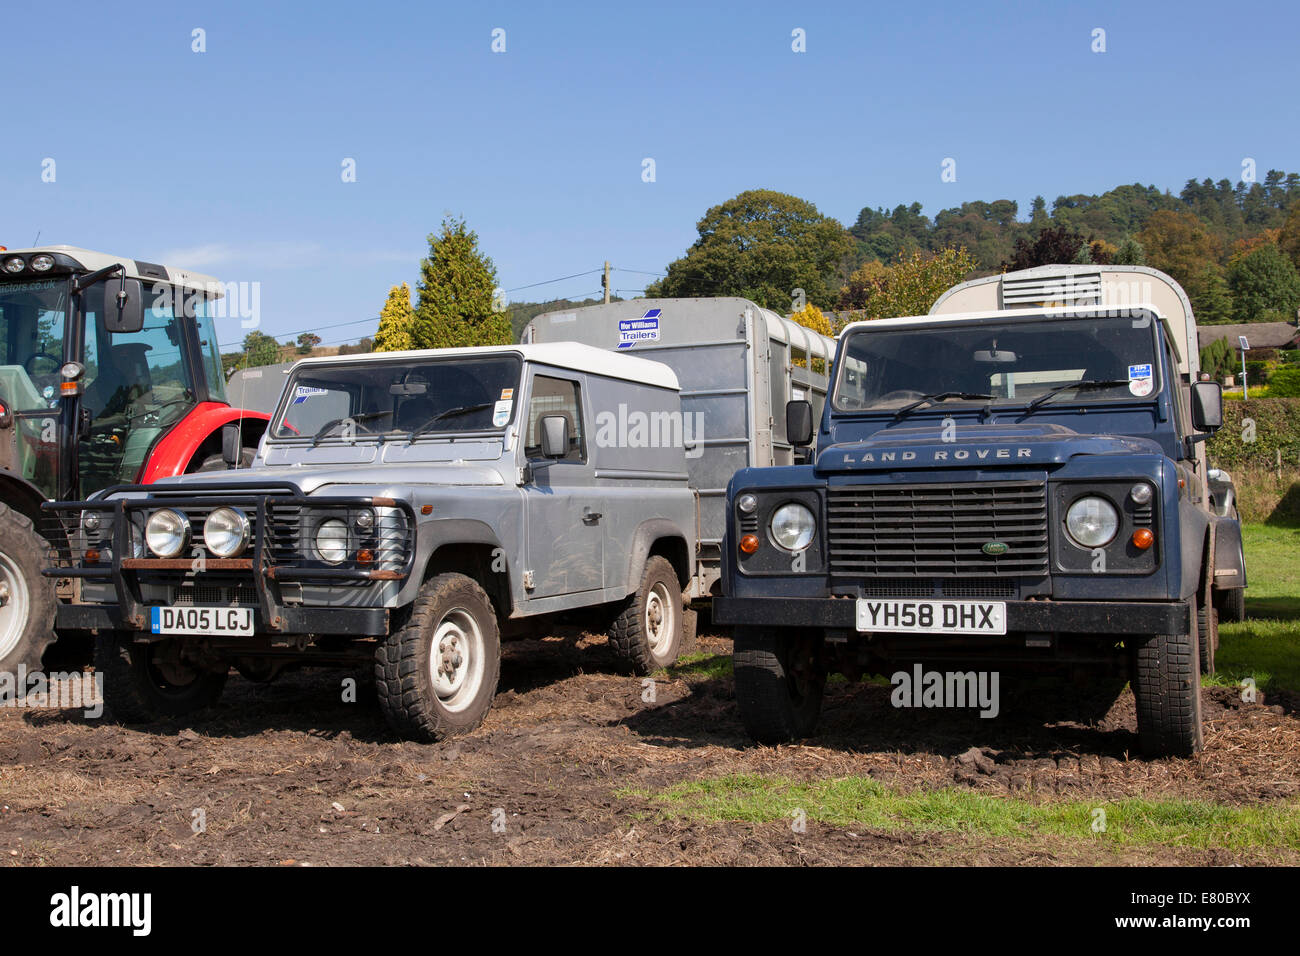 land rover defender 4x4 farm vehicles in the u k stock photo royalty free image 73768126 alamy. Black Bedroom Furniture Sets. Home Design Ideas